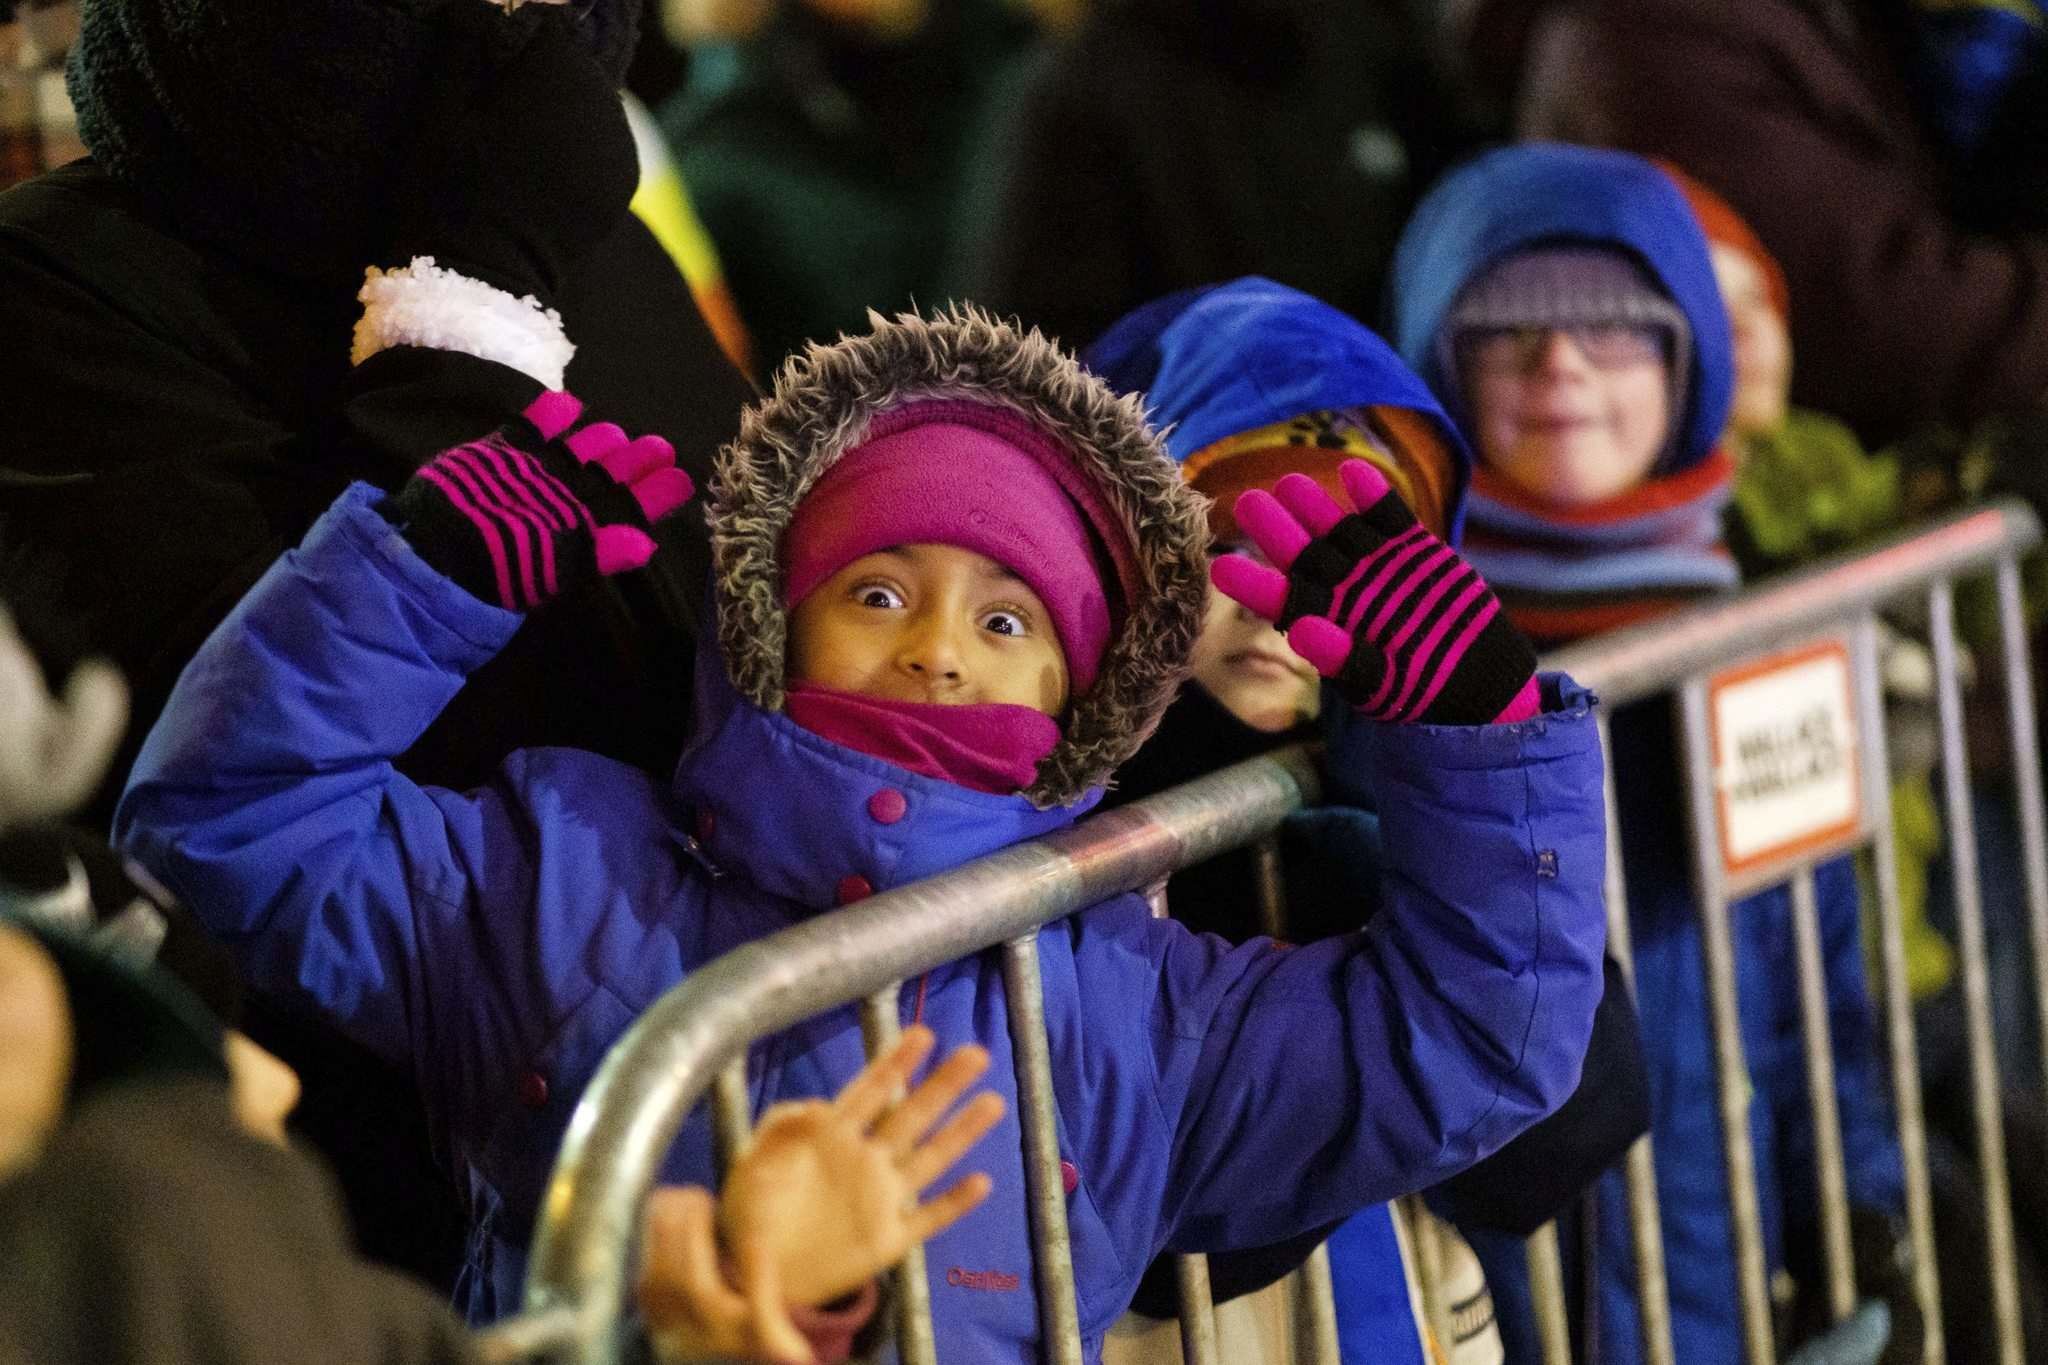 DANIEL CRUMP / WINNIPEG FREE PRESS</p><p>Youngsters wait excitedly for Santa to make his appearance.</p></p>